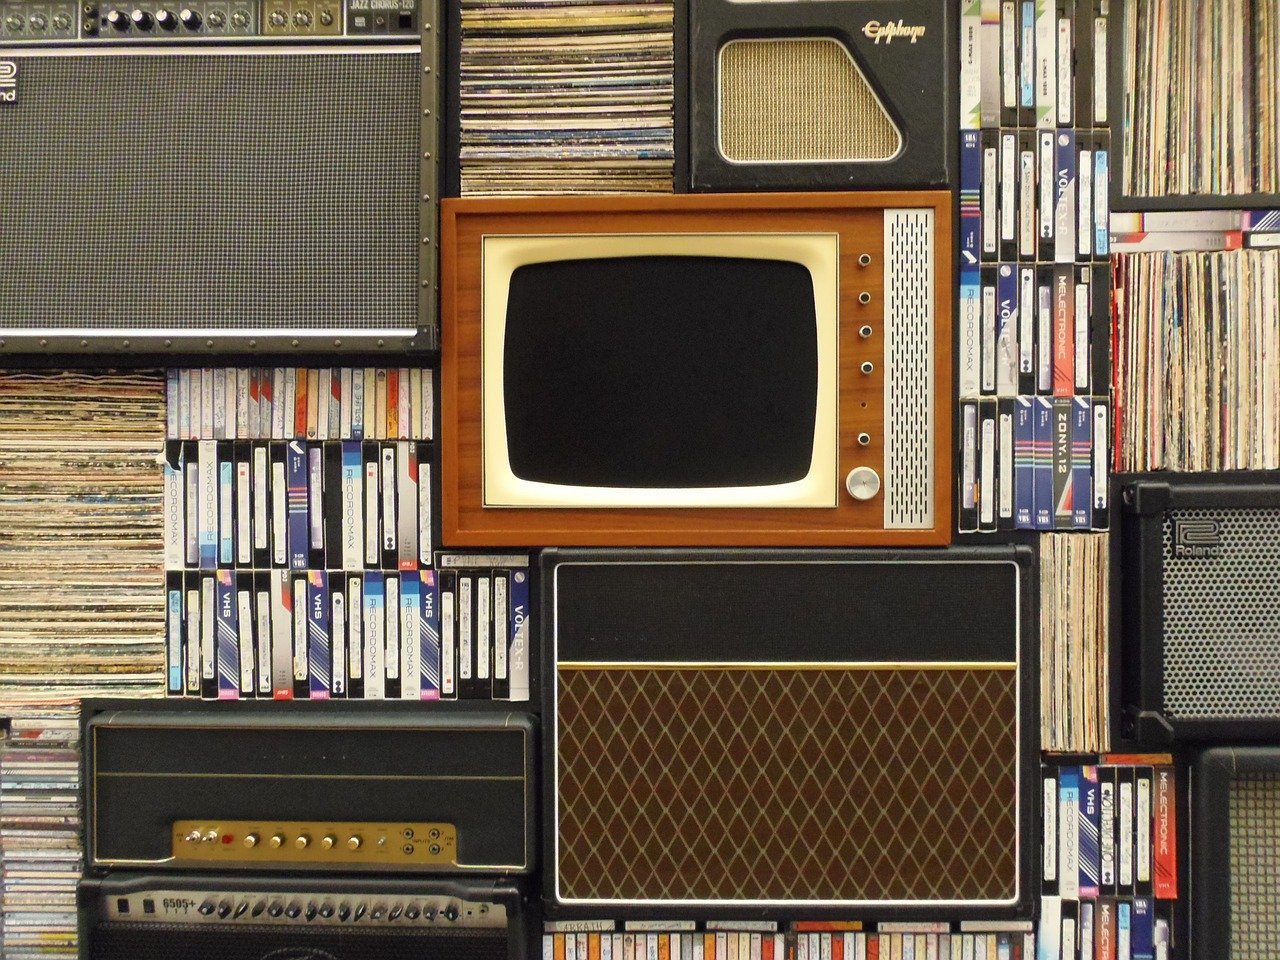 old tv, records, vhs tapes